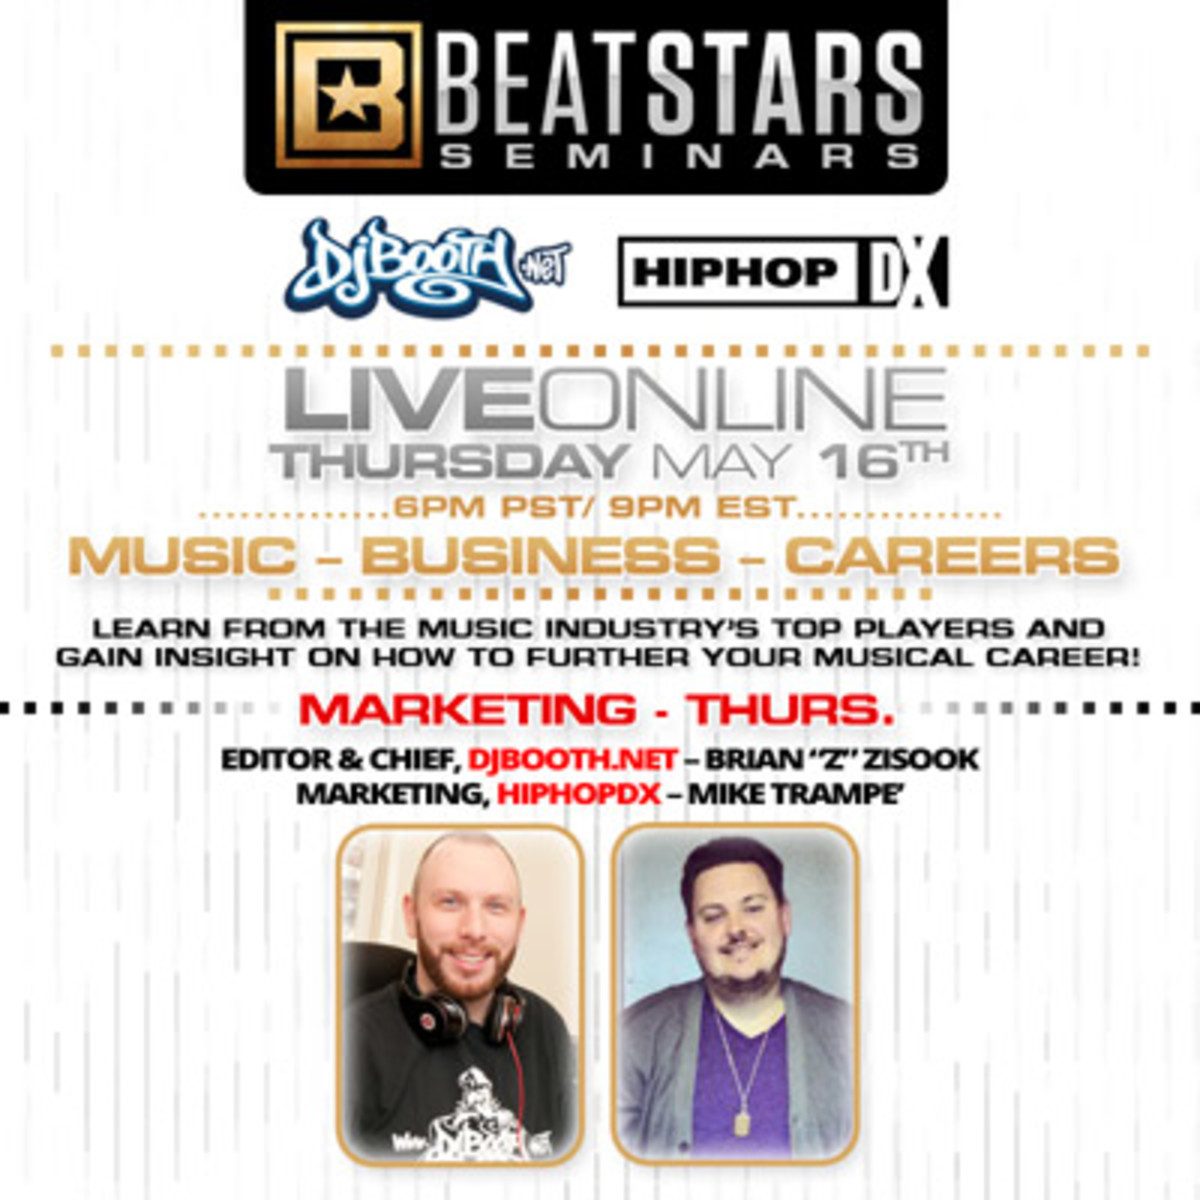 beatstars-event.jpg